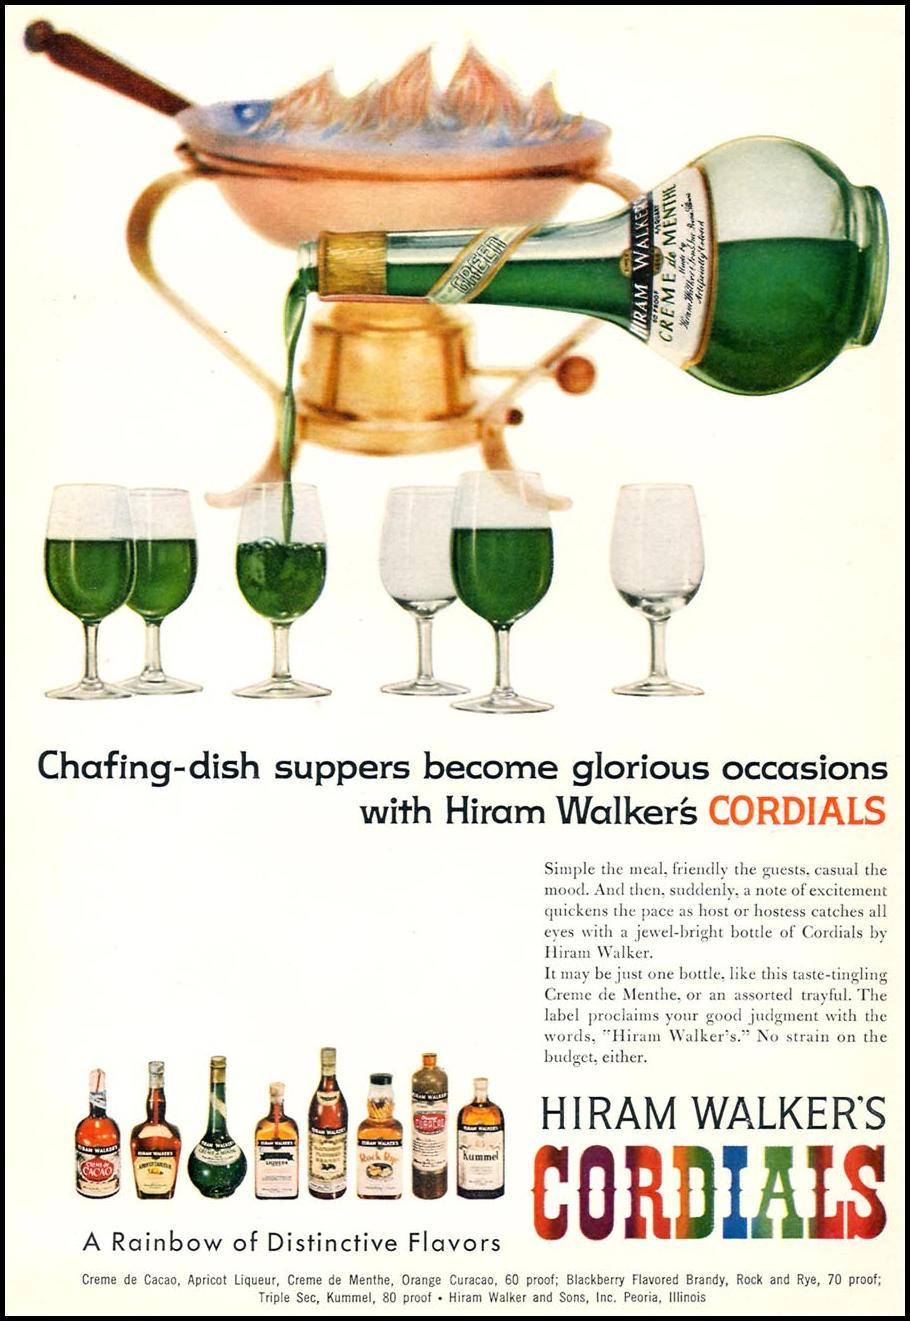 HIRAM WALKER'S CORDIALS SPORTS ILLUSTRATED 05/25/1959 p. 46